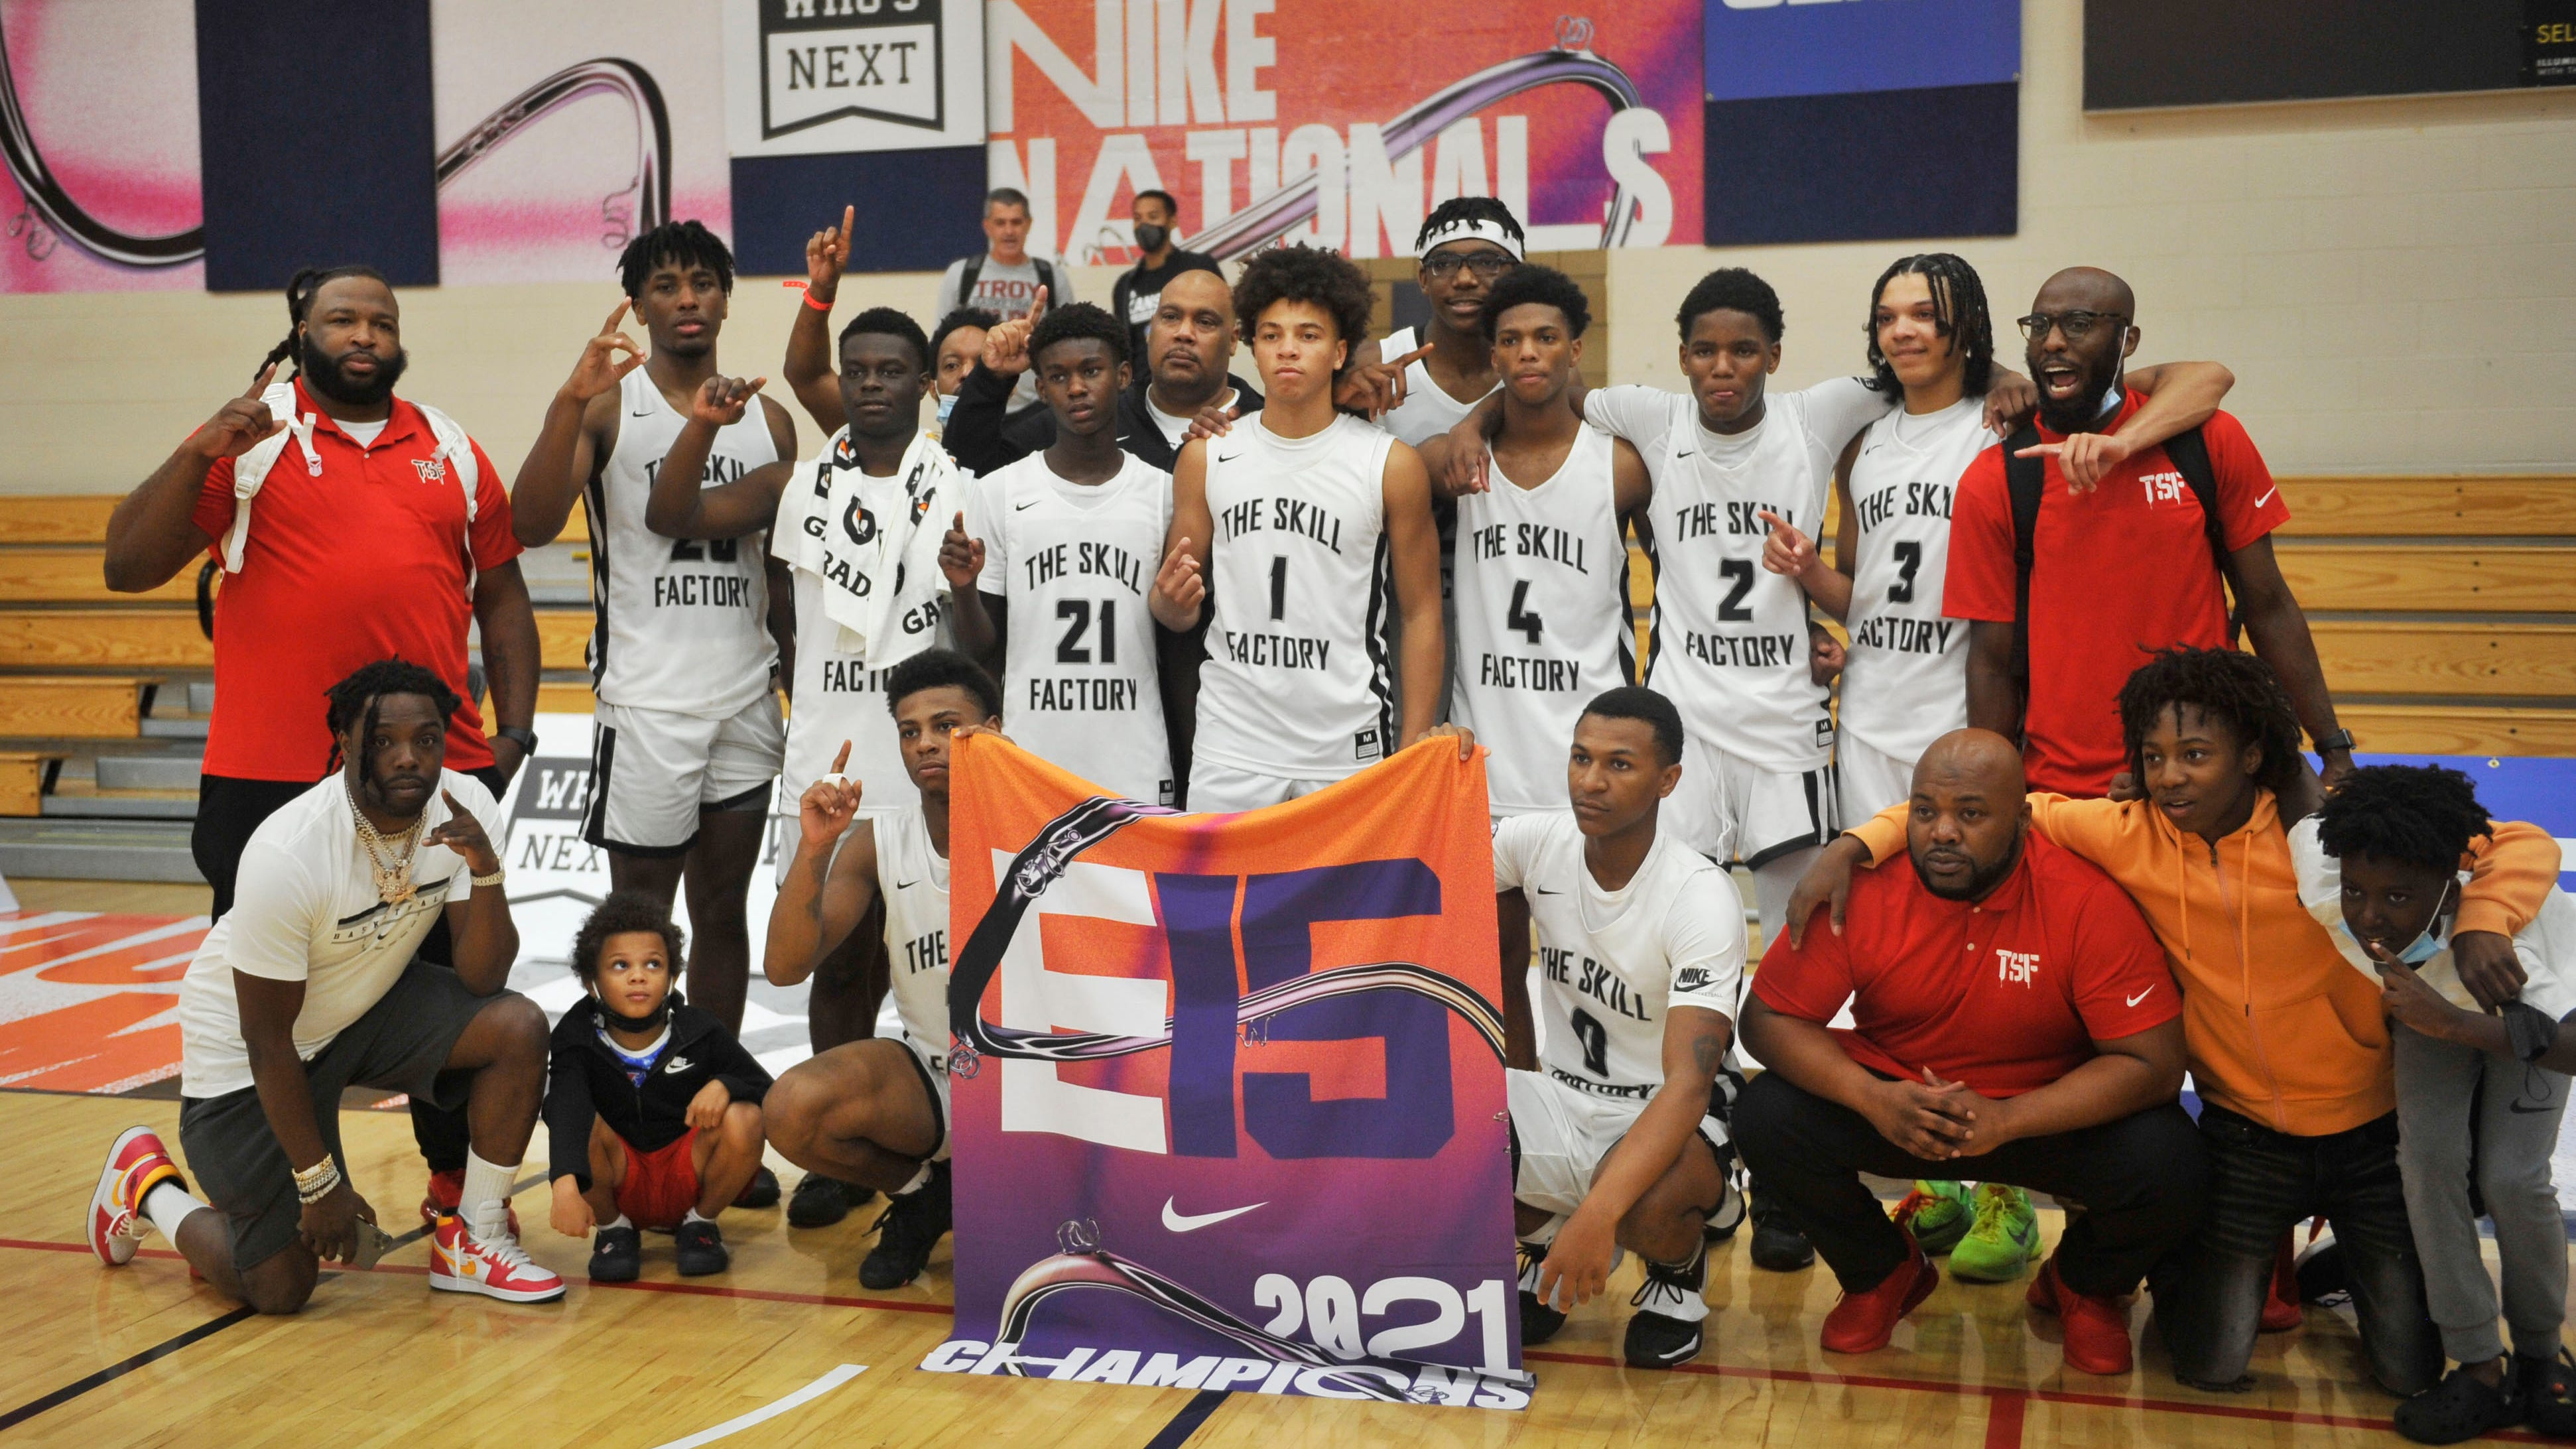 The Skill Factory poses after defeating Team United 66-60 in the E15 EYBL Championship on Sunday, July 24, 2021 at the Riverview Park Activities Center in North Augusta, S.C. [WYNSTON WILCOX/THE AUGUSTA CHRONICLE]